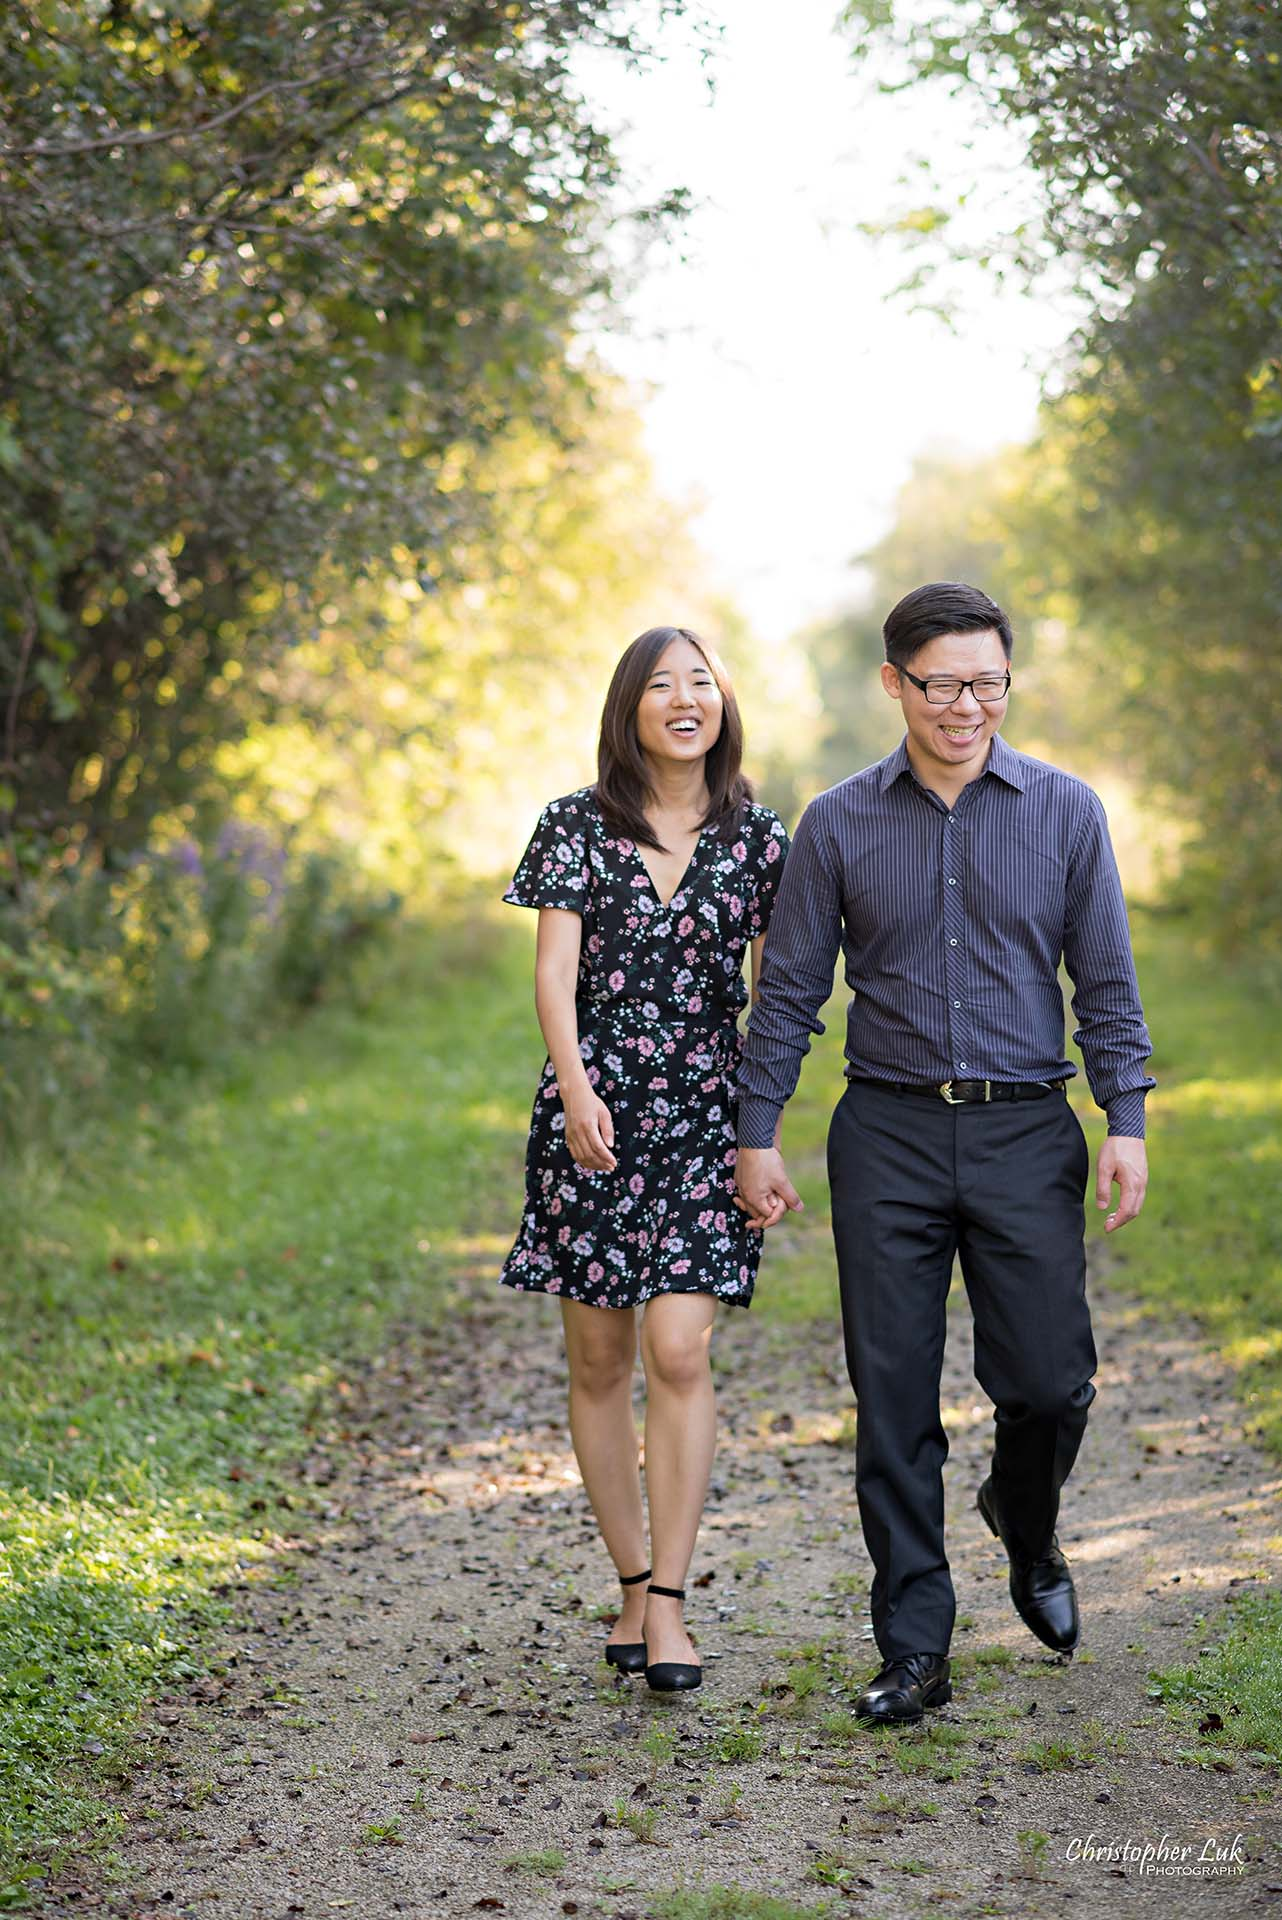 Christopher Luk Toronto Wedding Photographer - Richmond Hill Markham York Region Conservation Area Engagement PreWedding Chinese Korean - Natural Candid Photojournalistic Bride Groom Holding Hands Walking Laugh Smile Path Walk